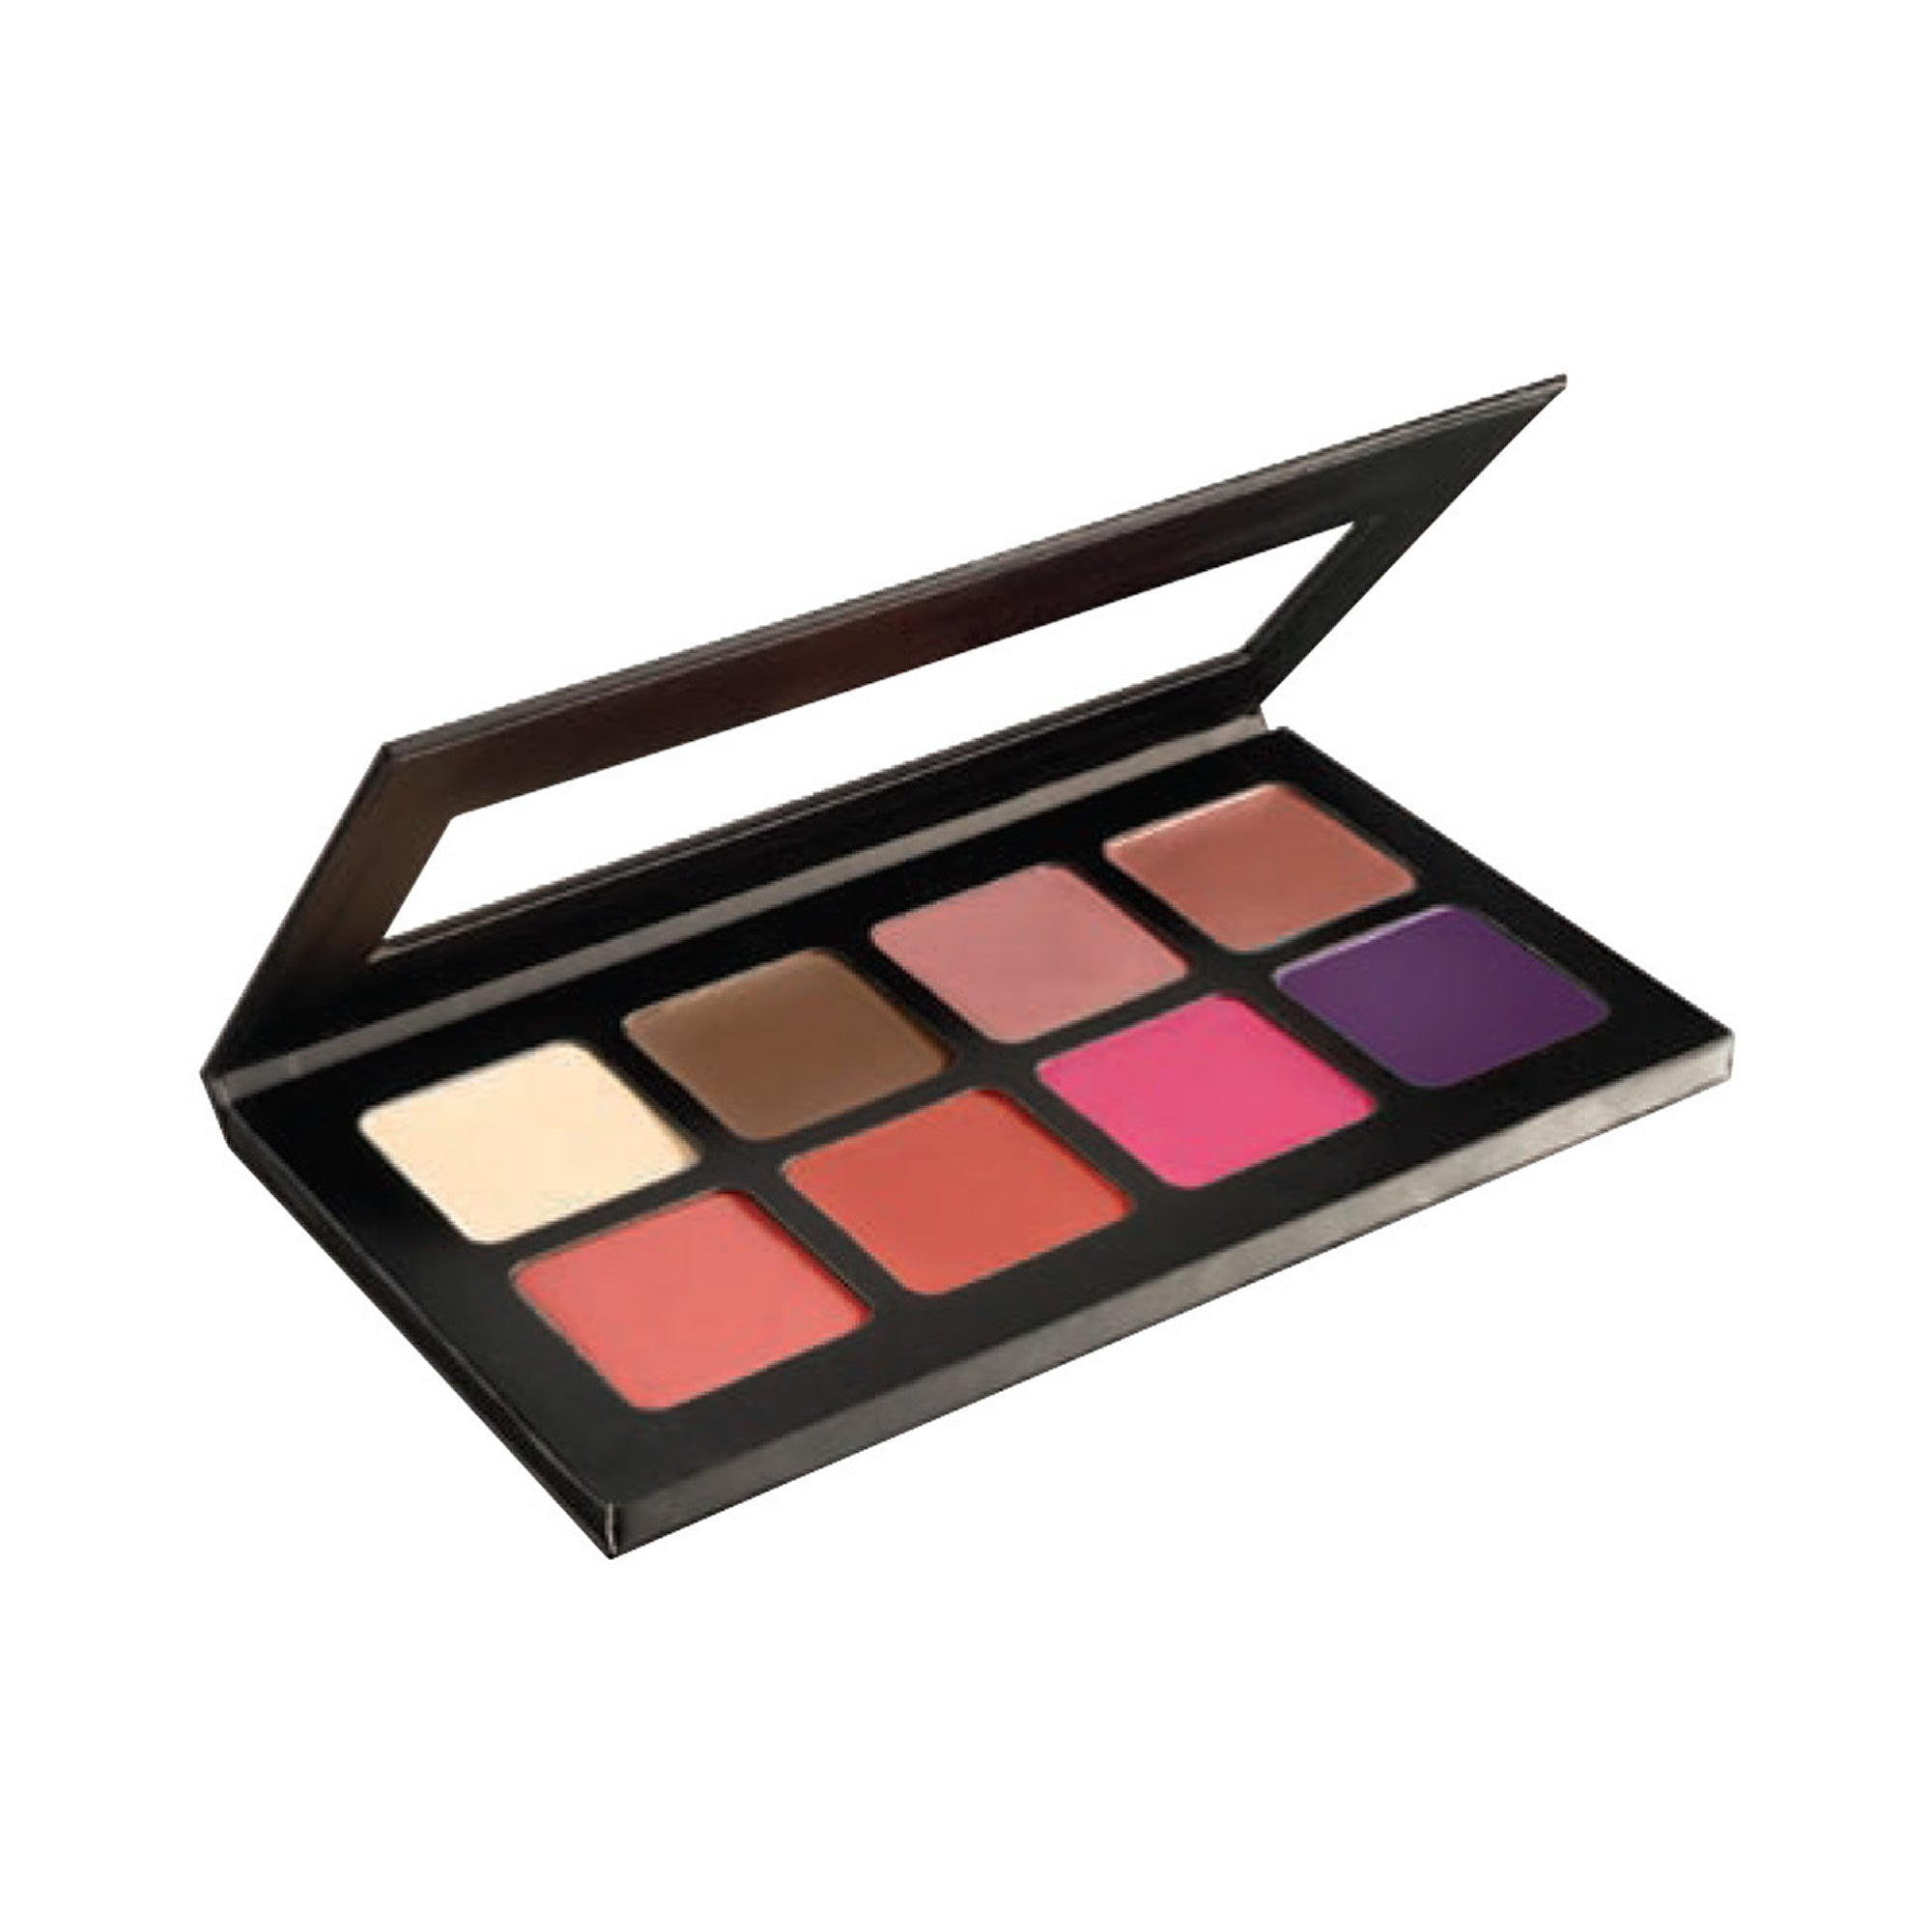 Ben Nye MediaPro HD Select Blush & Contour Palette - Red Carpet FX - Professional Makeup